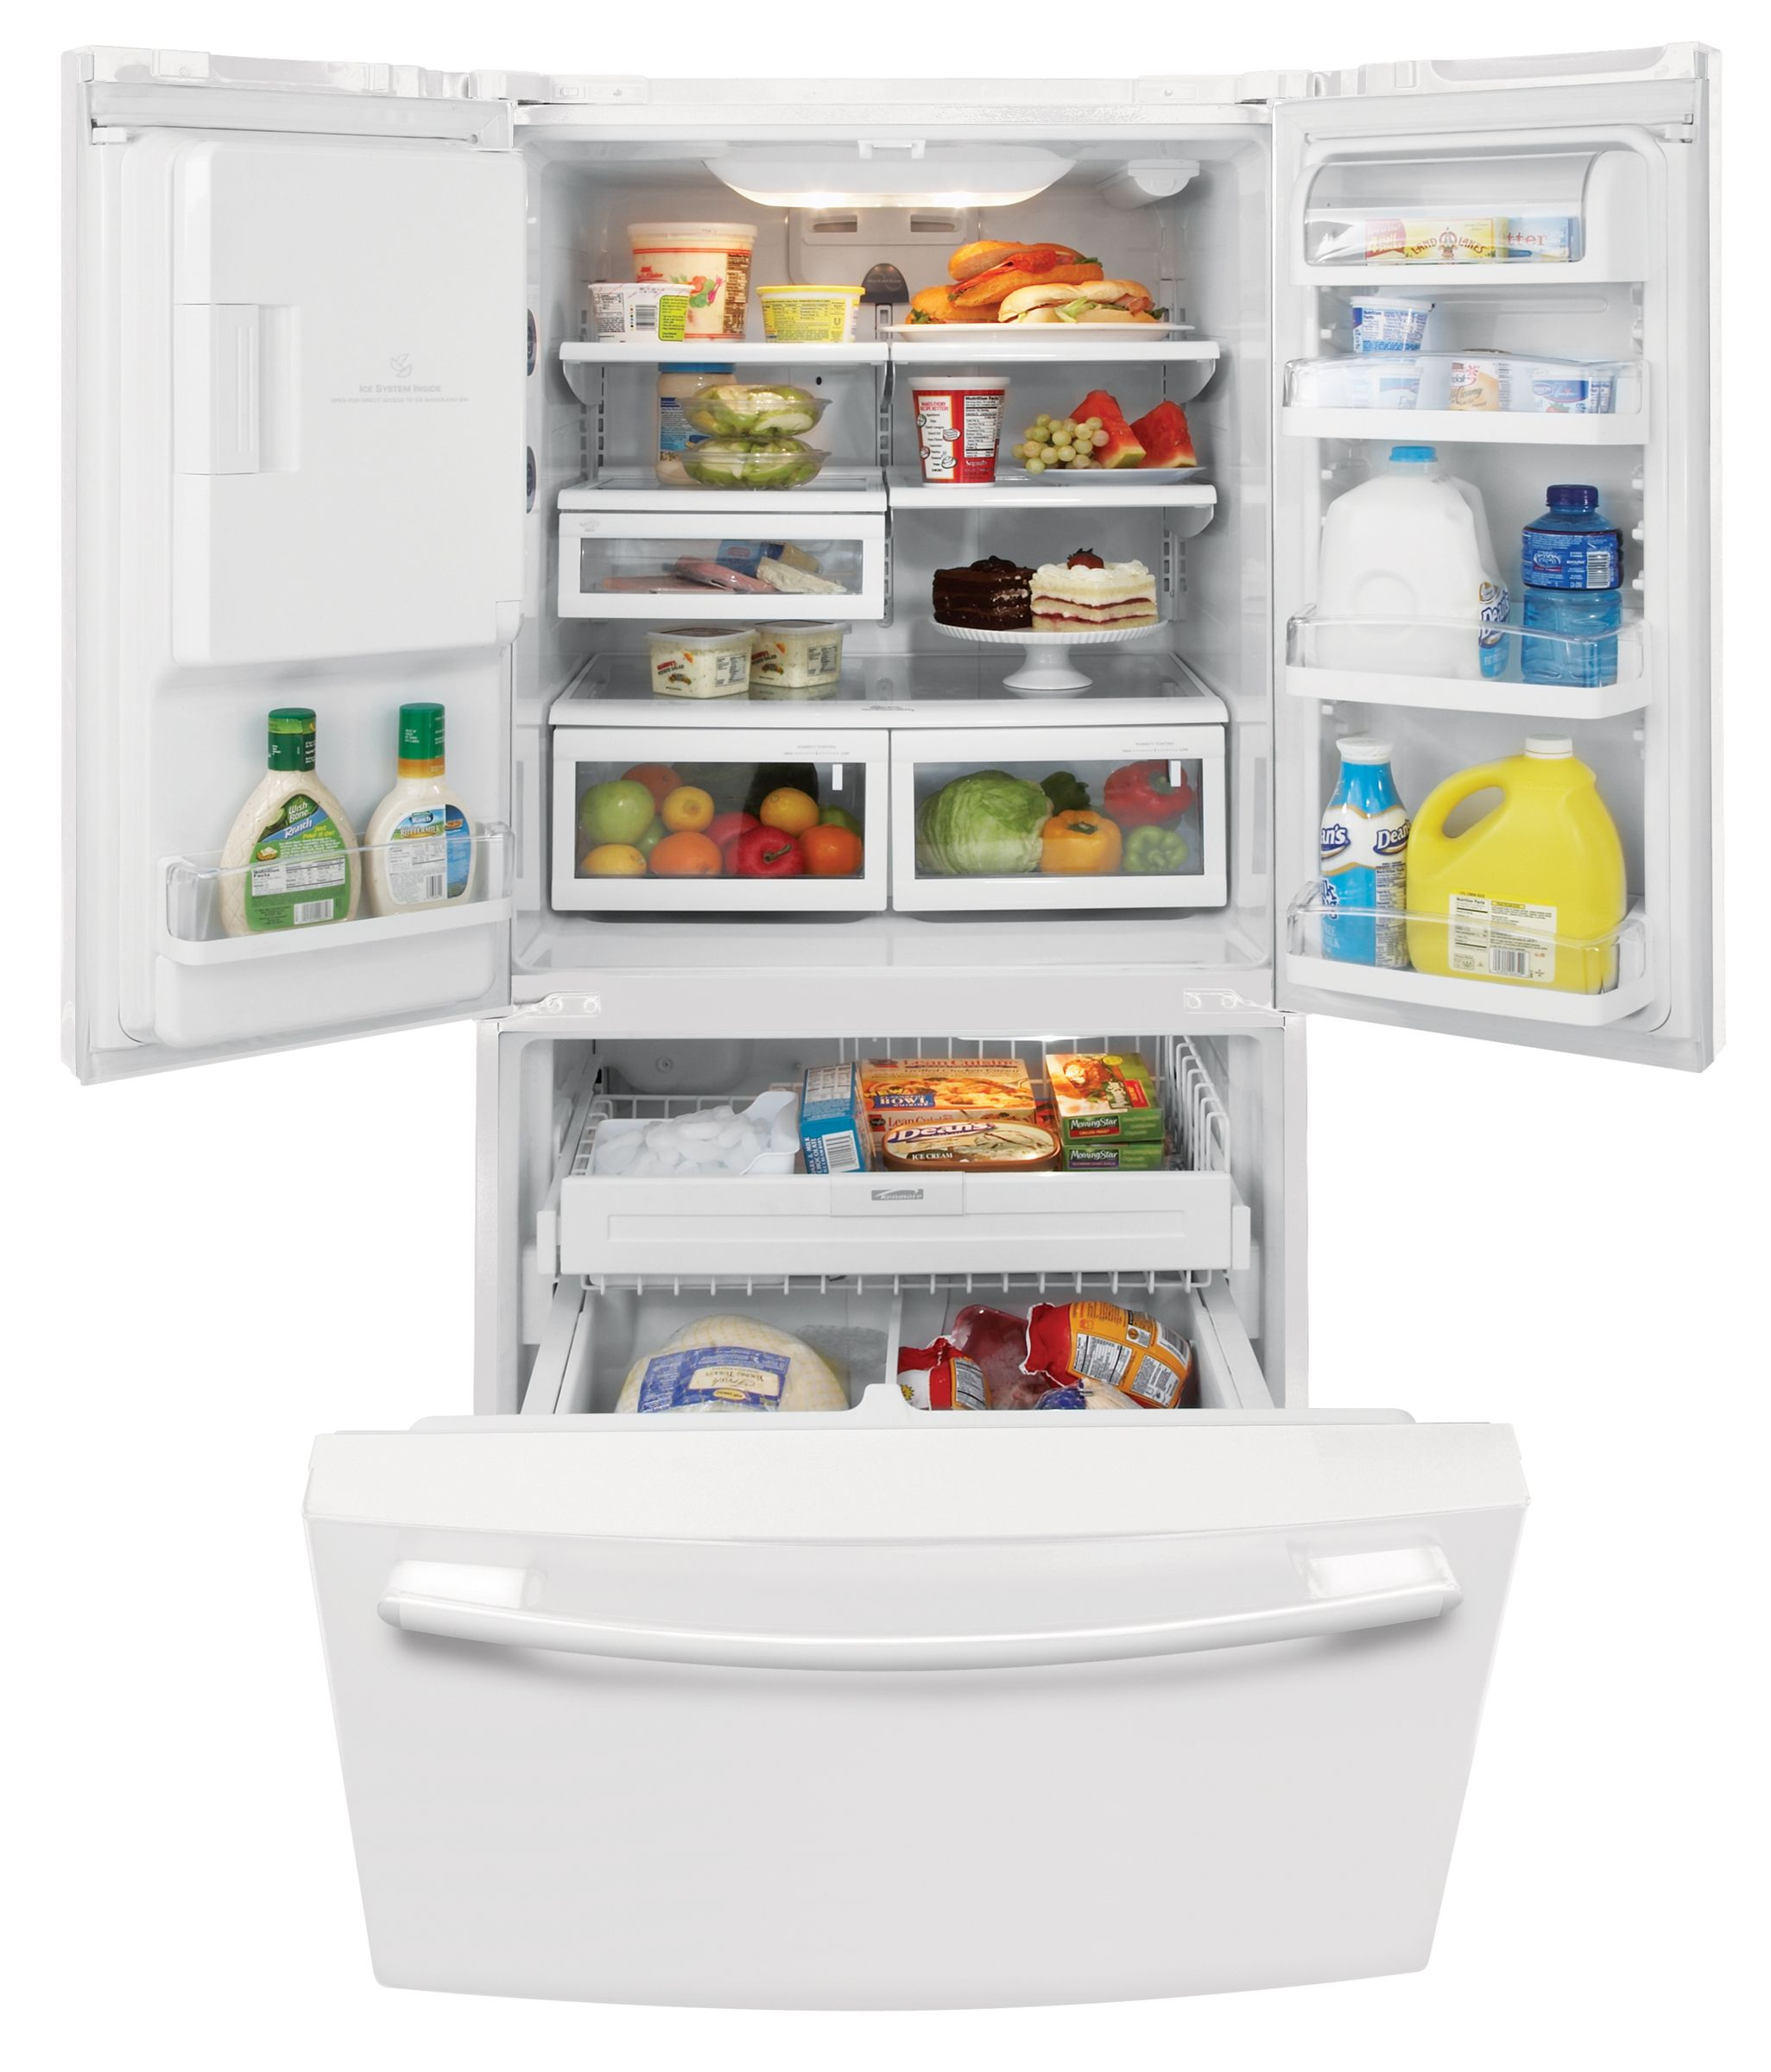 Kenmore 23.0 cu. ft. French-Door Bottom Freezer Refrigerator (7840)